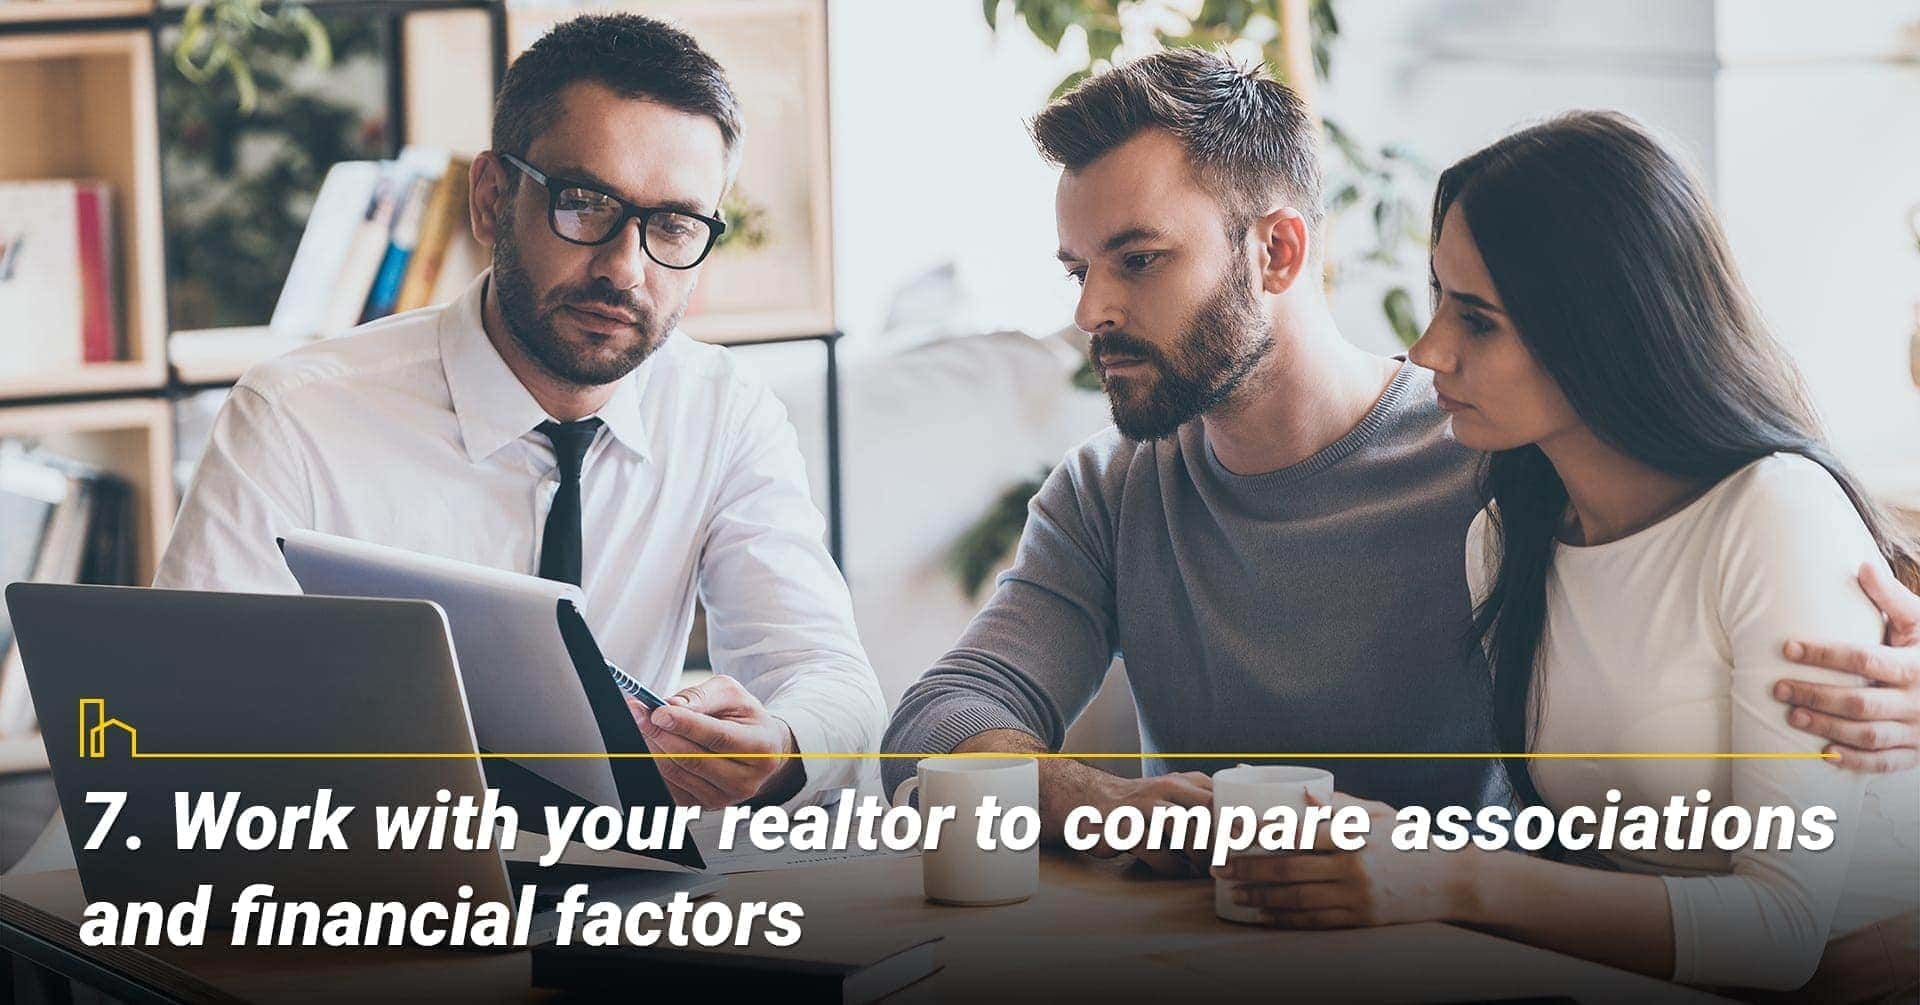 Work with your realtor to compare associations and financial factors, work with your realtor to find out the financial situation of the association